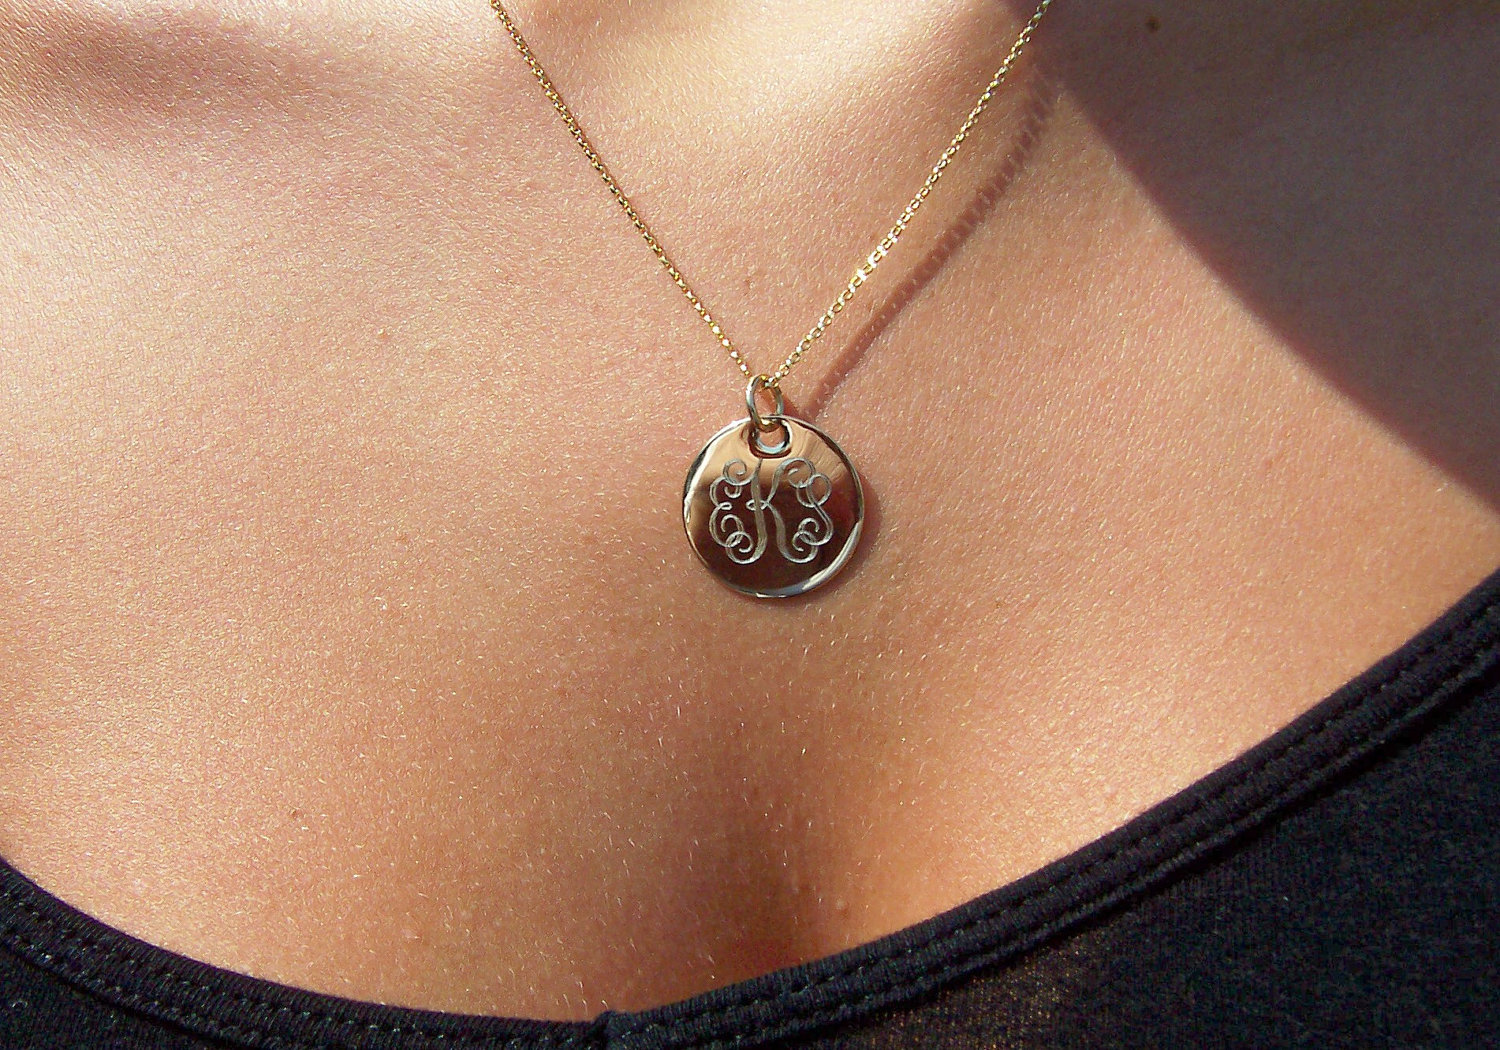 14K Solid Gold Engraved Personalized Monogram Necklace ...